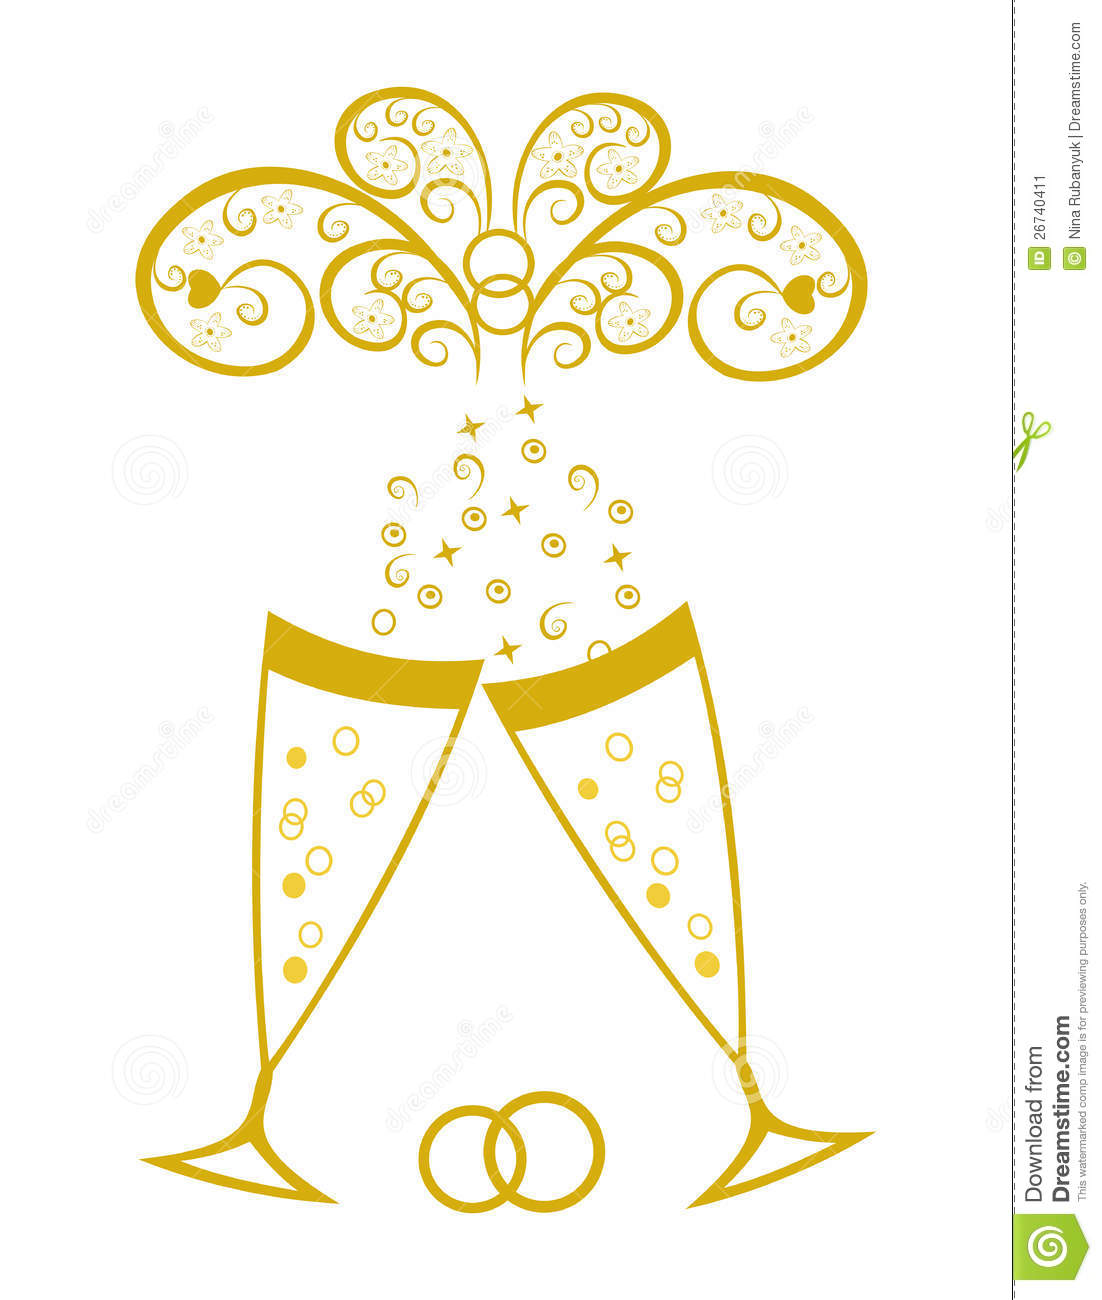 Champagne Wedding Invitations was amazing invitations design